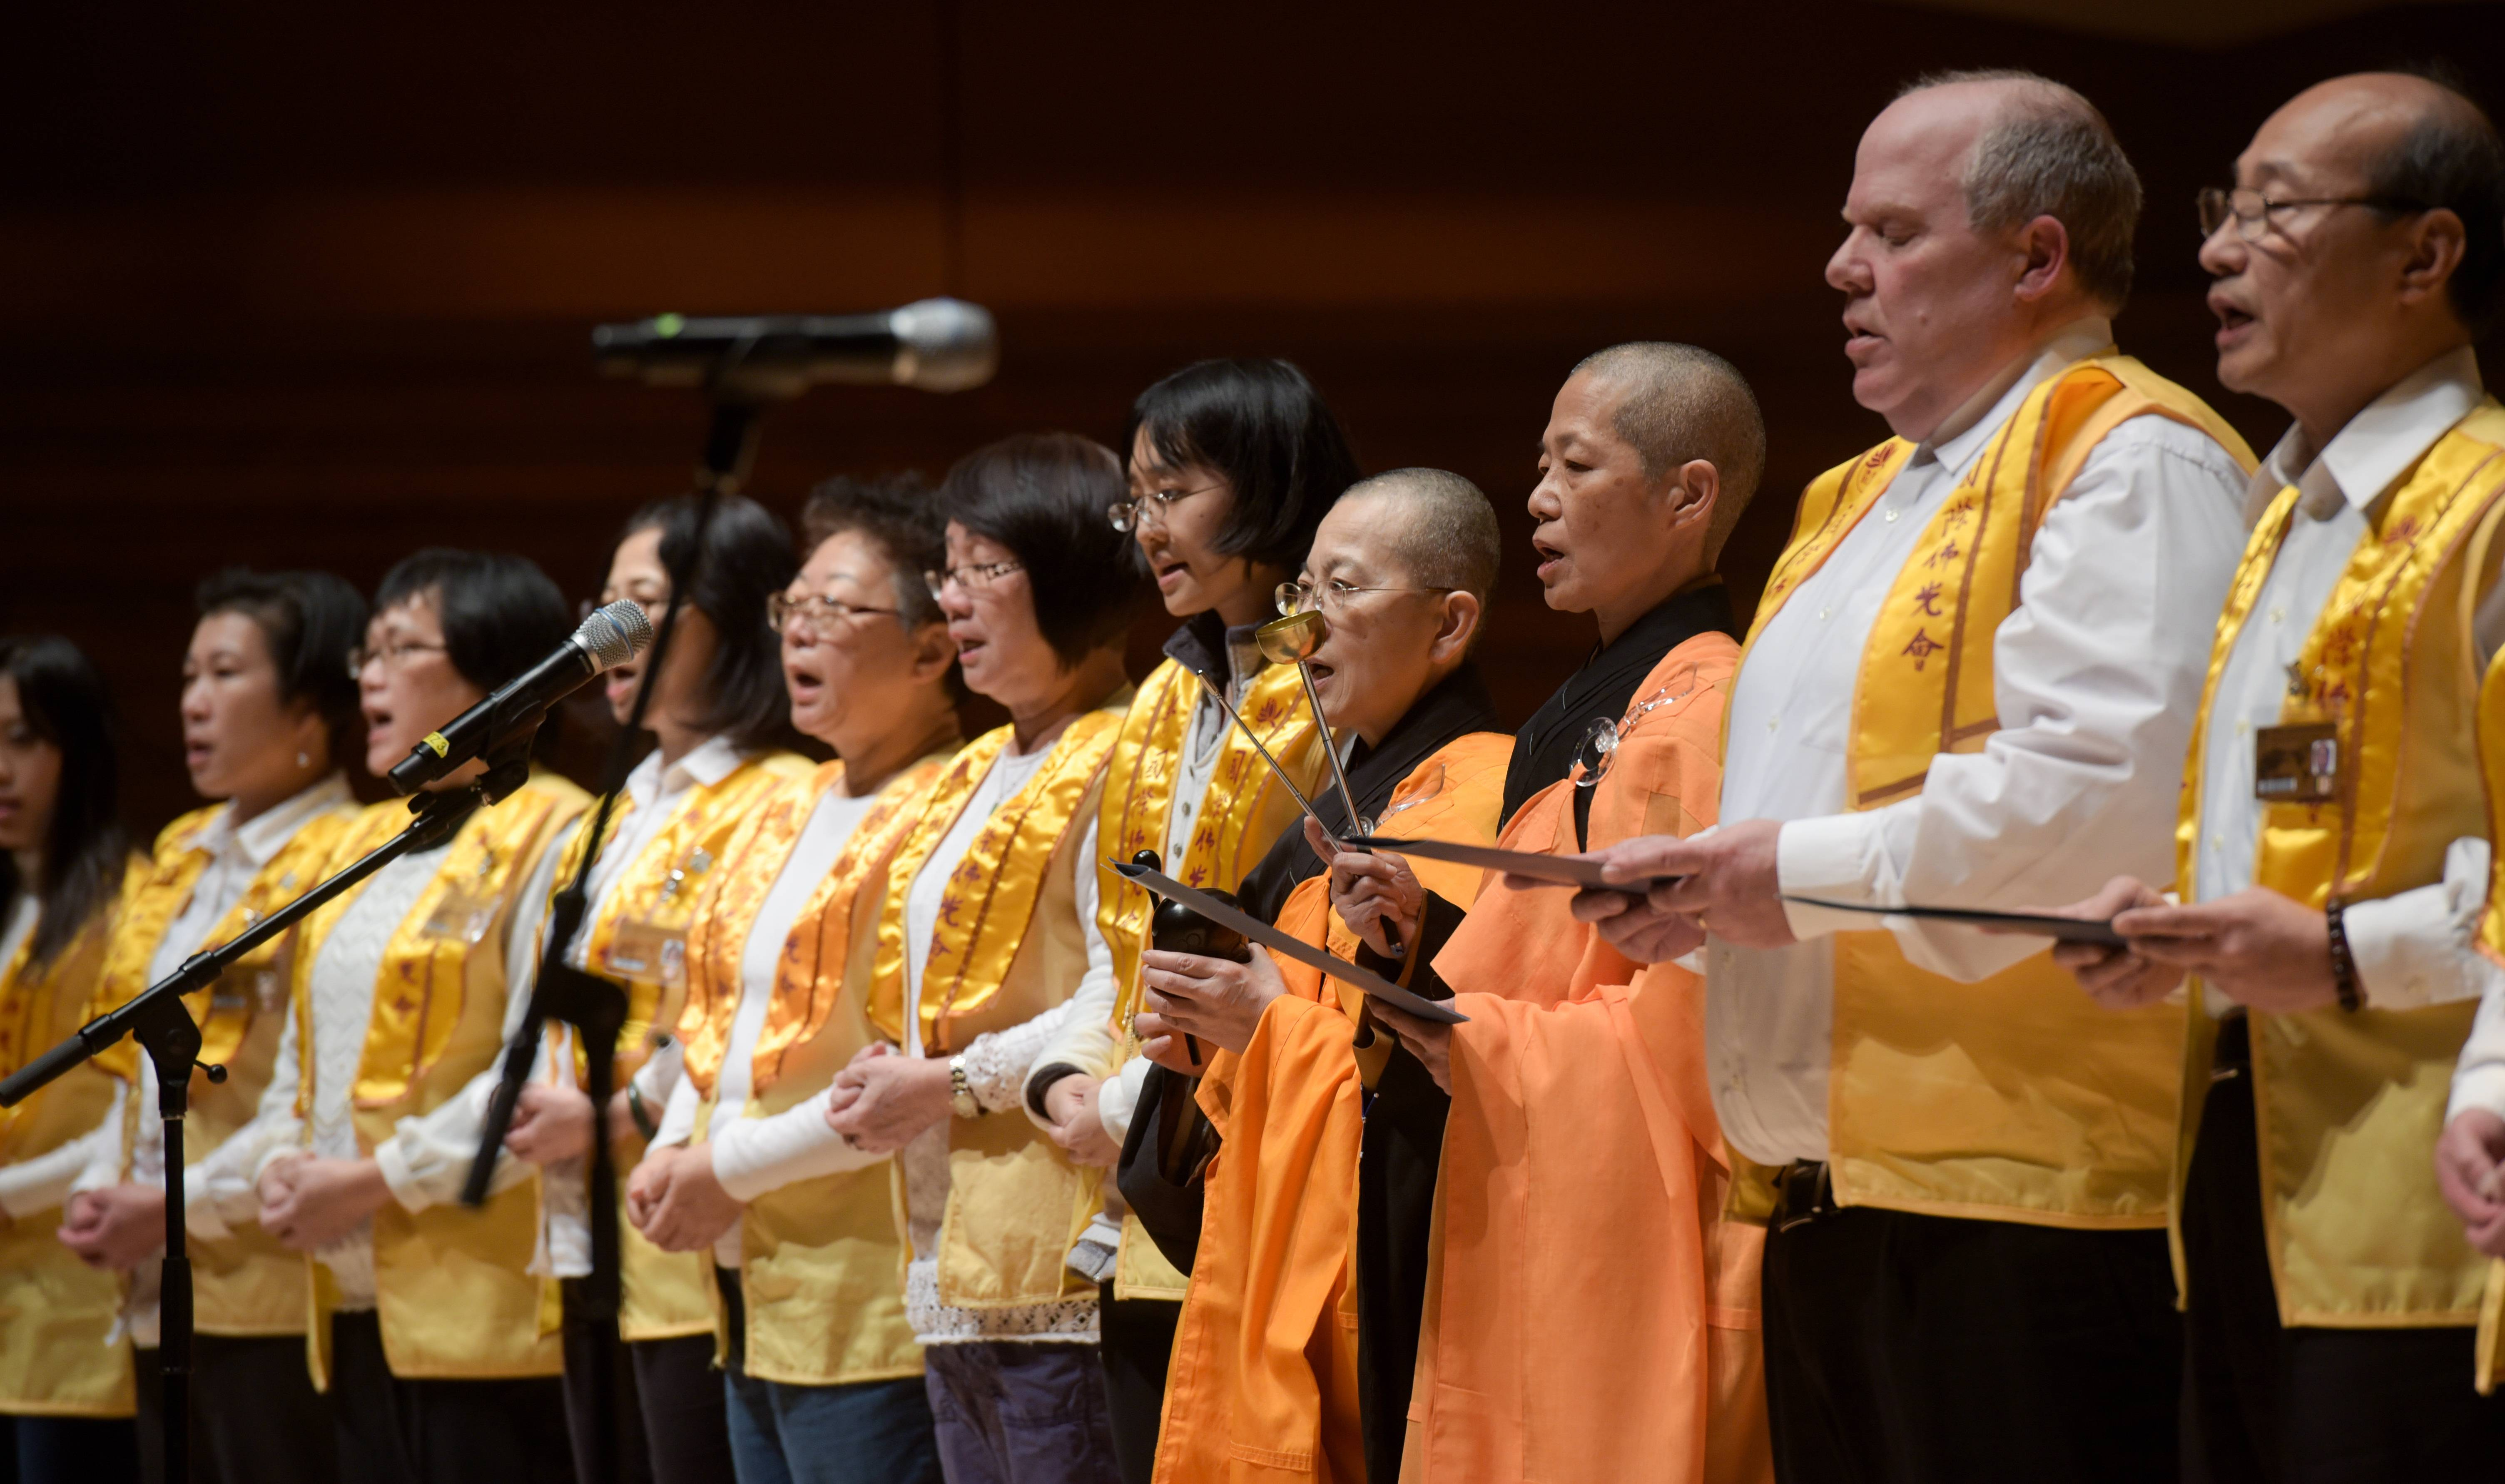 Members of the International Buddhist Progress Society perform during the 13th annual World Peace Day Interfaith Prayer Service at North Central College's Wentz Concert Hall on Sunday.